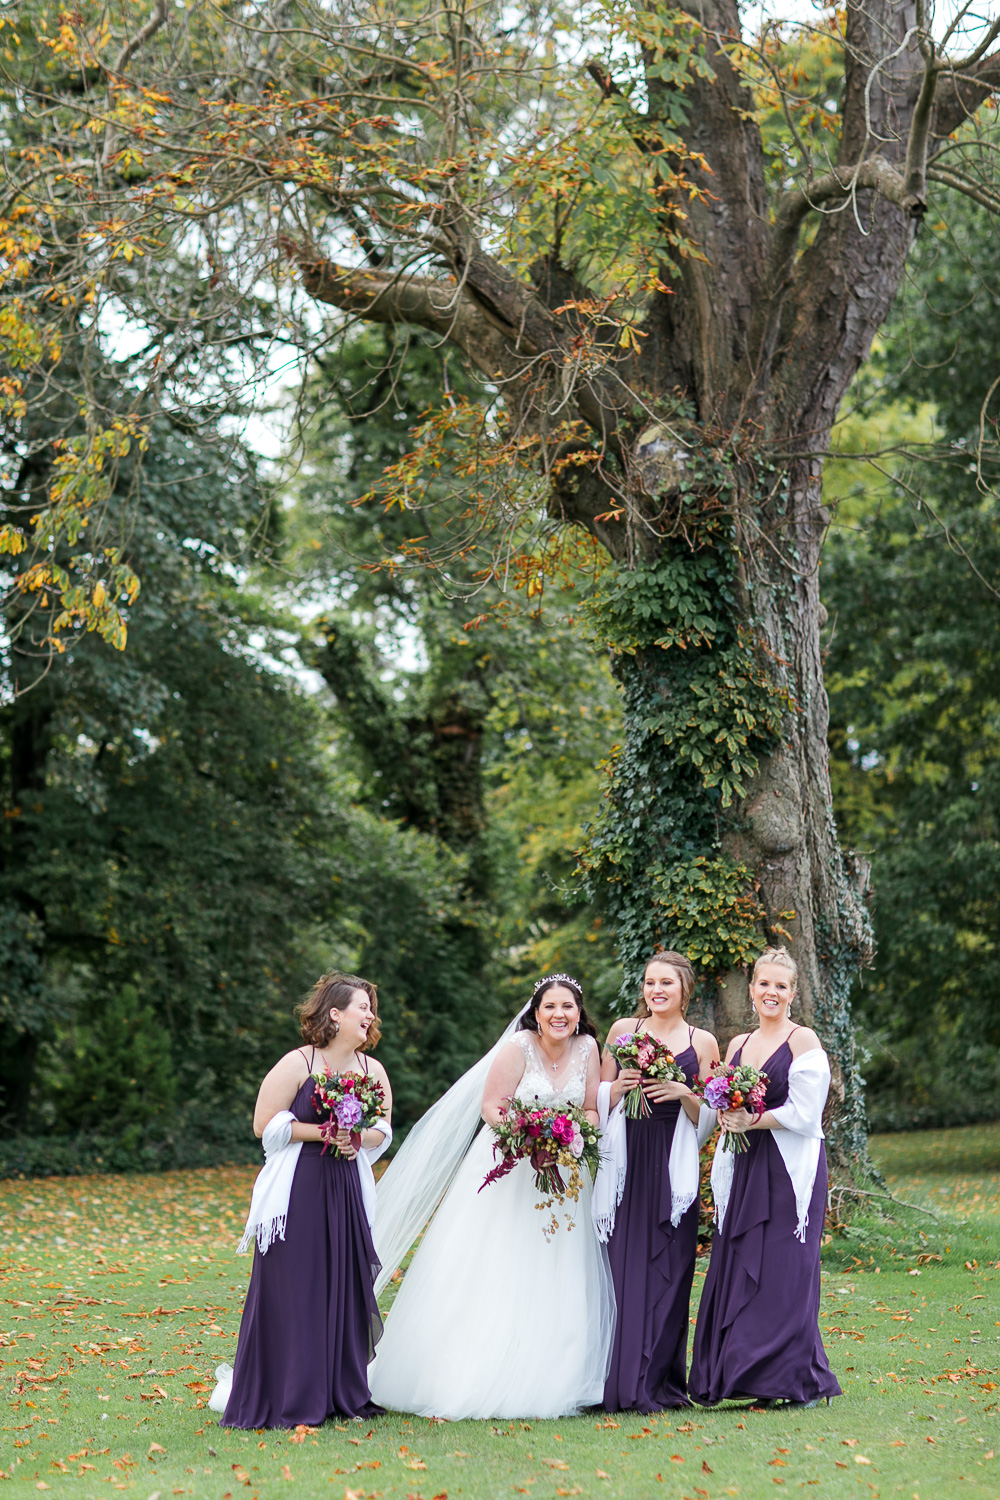 purple bridesmaids dresses with the bride outside under a tree on the grass